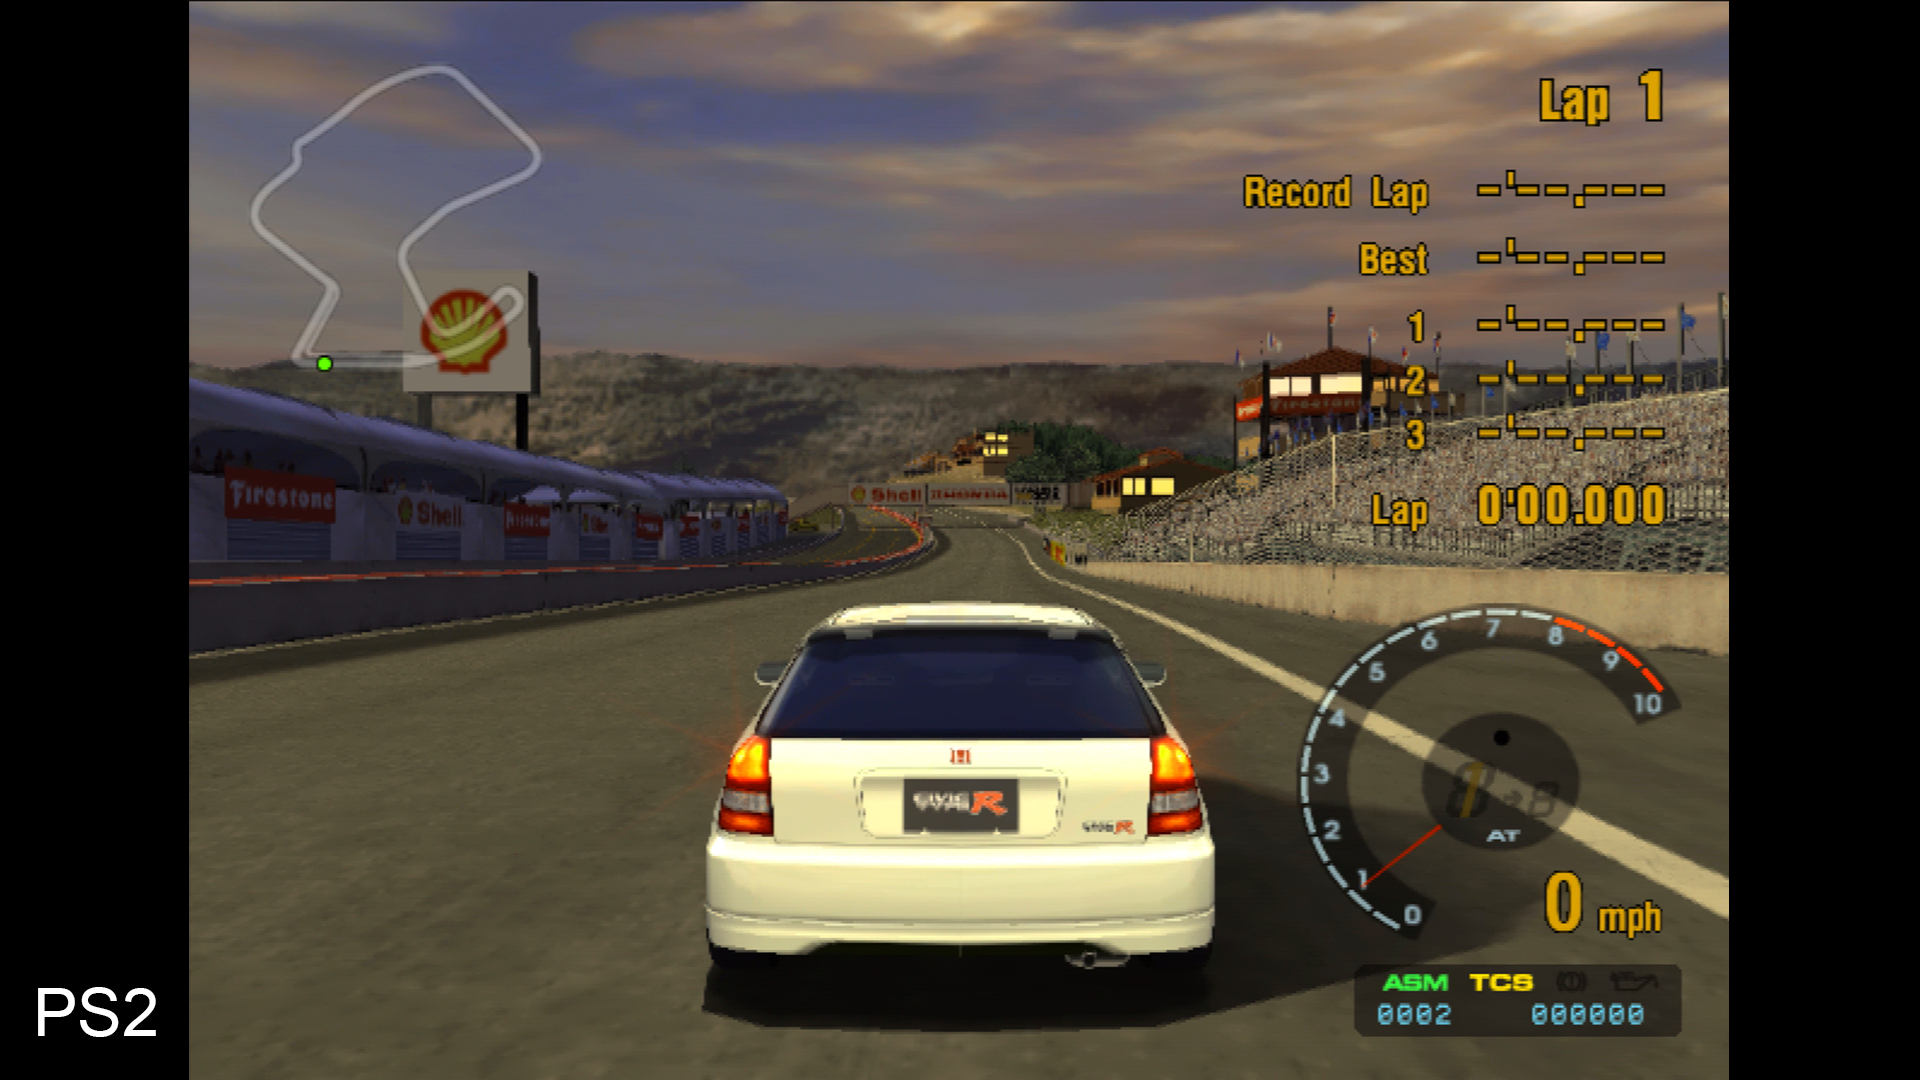 The Same Car And Track Across Three Generations Of Gran Turismo Here We See Laguna Seca As It Has Appeared Throughout Series